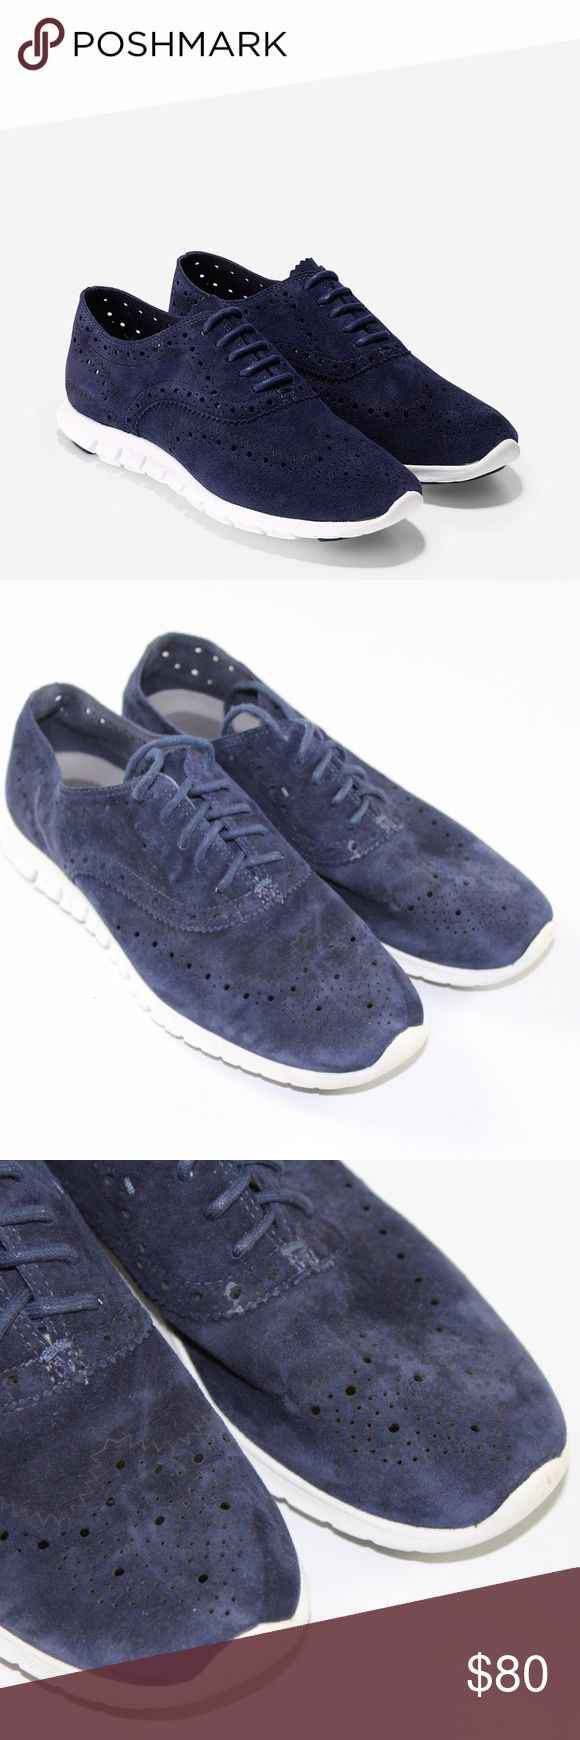 Cole Haan Women's Size 7 Zerogrand Wingtip Shoes Cole Haan Grand OS Suede Wingtip Dress Shoes  Excellent shoes  Comes from a smoke-free household  Navy Blue and White  The size is 7  Suede Check out my other items in my store! Cole Haan Shoes